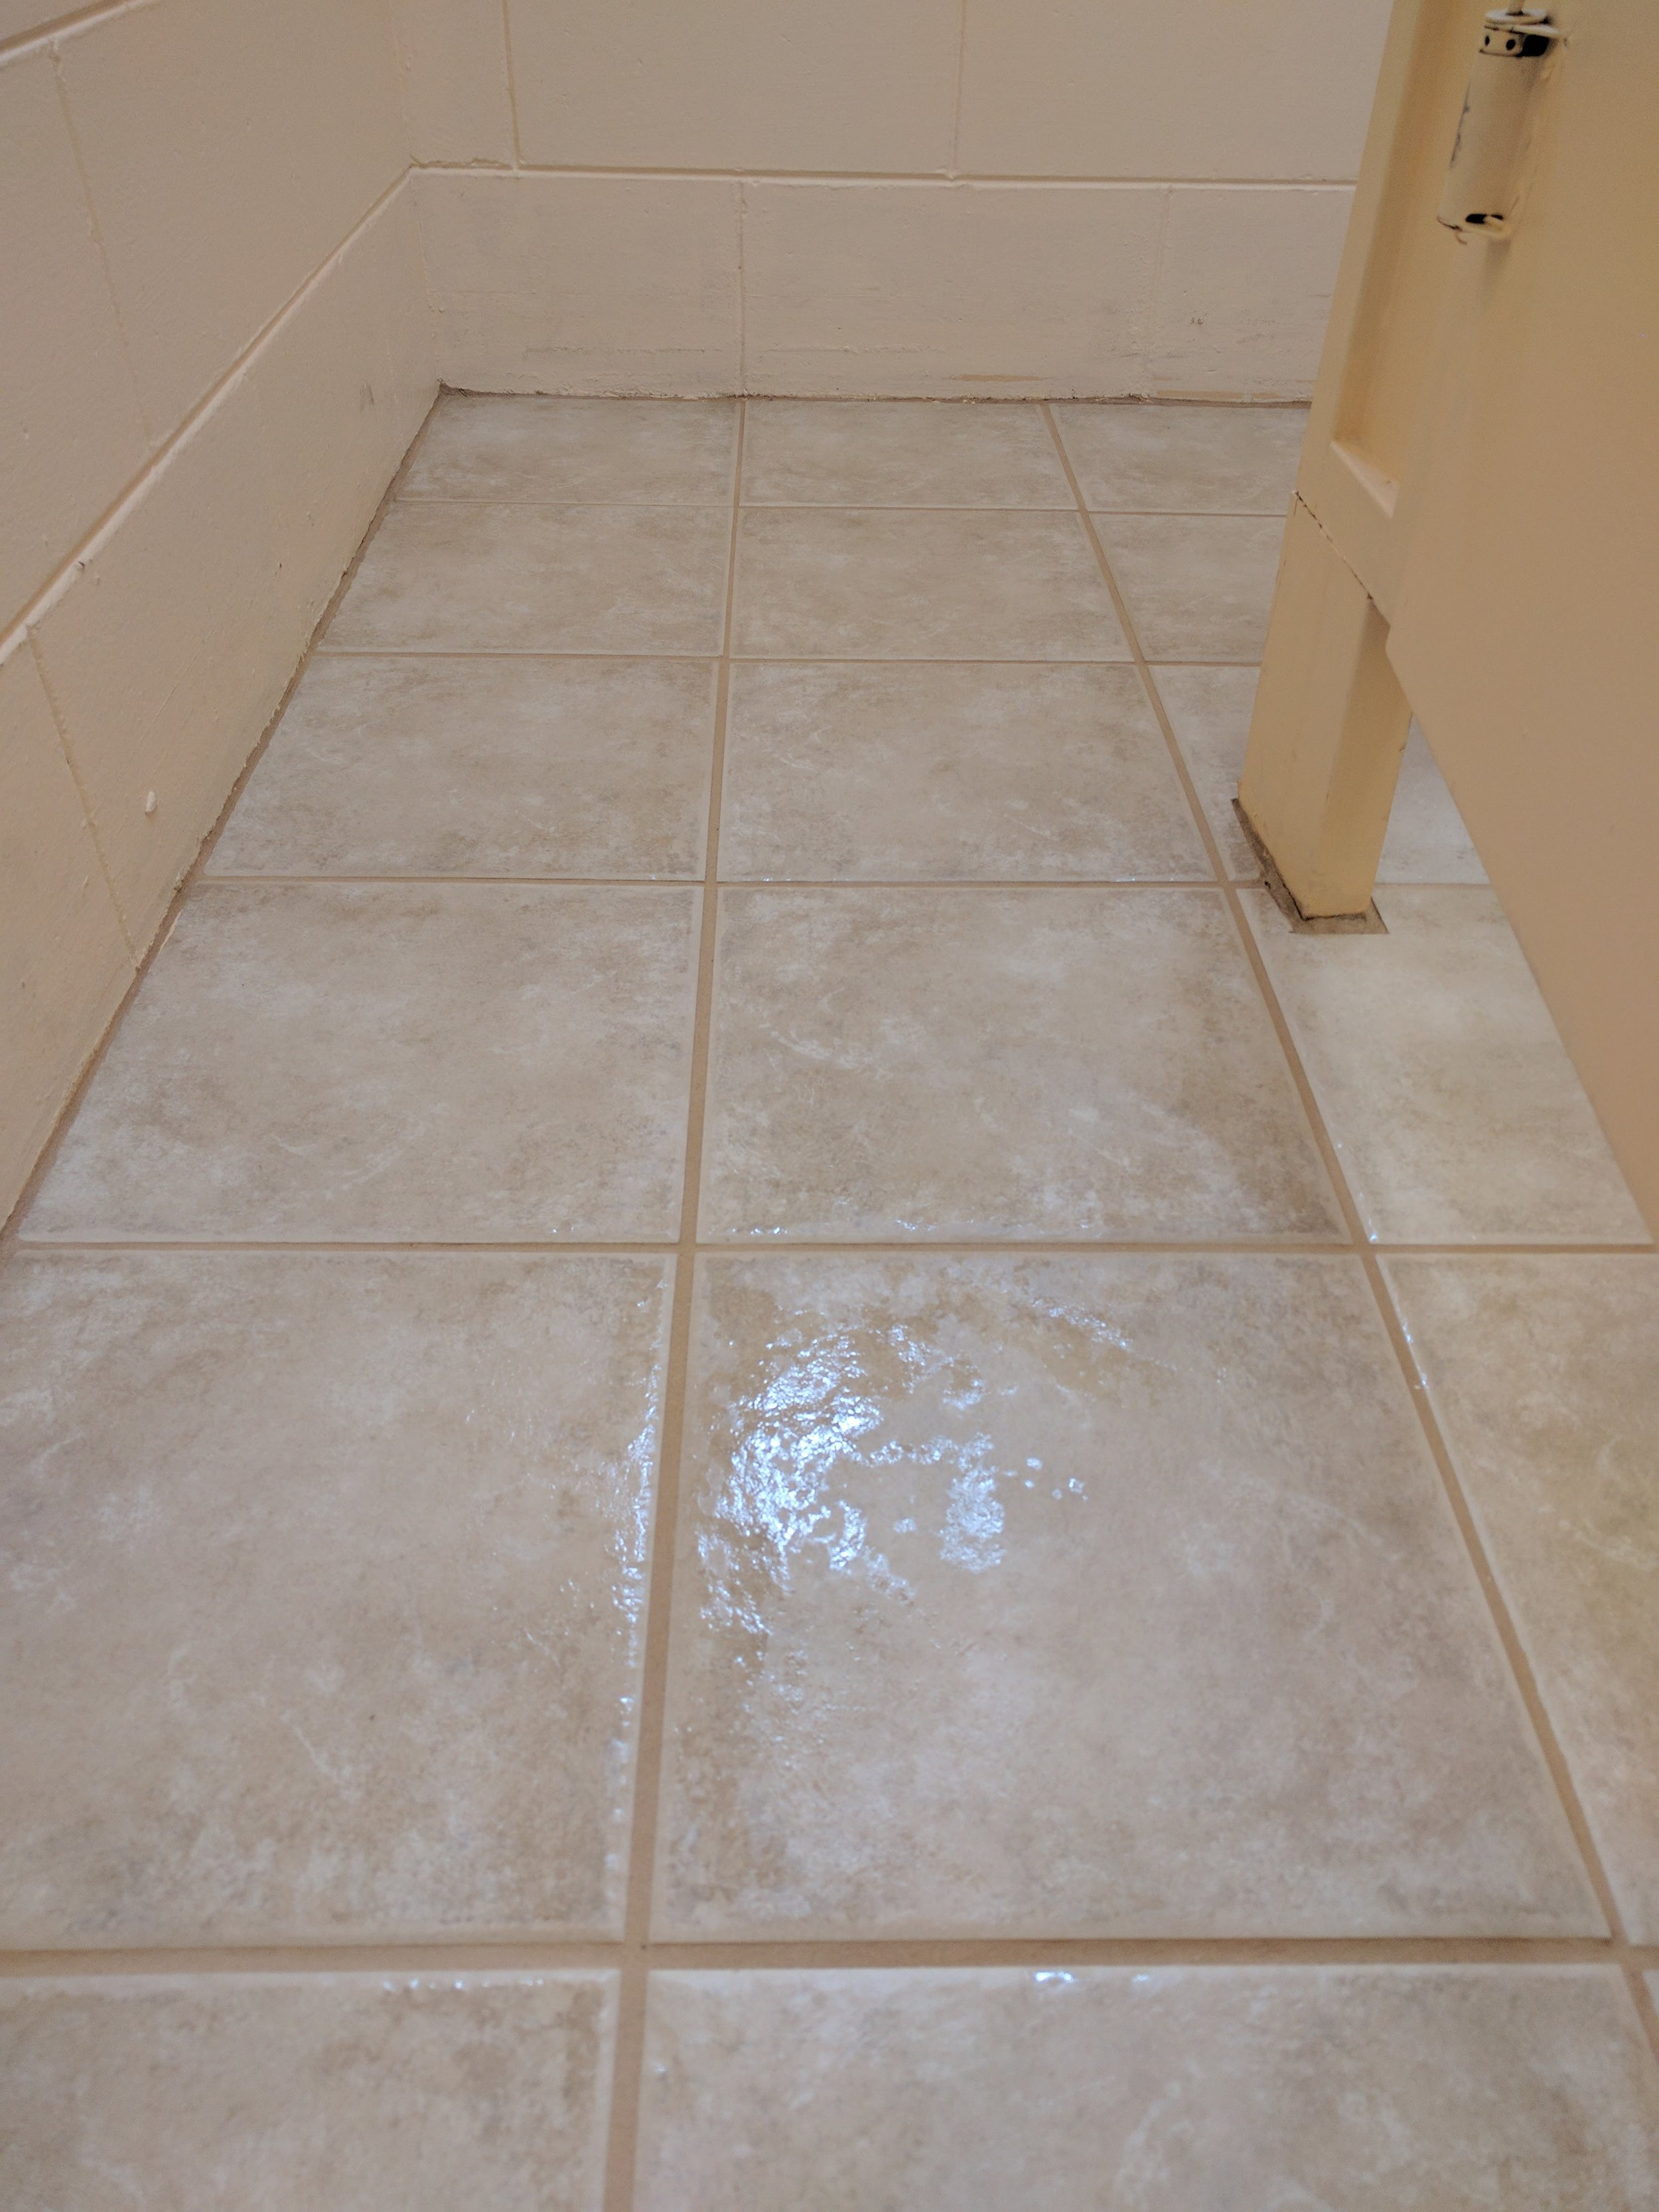 After proper solution had been applied and floor was steam cleaned.